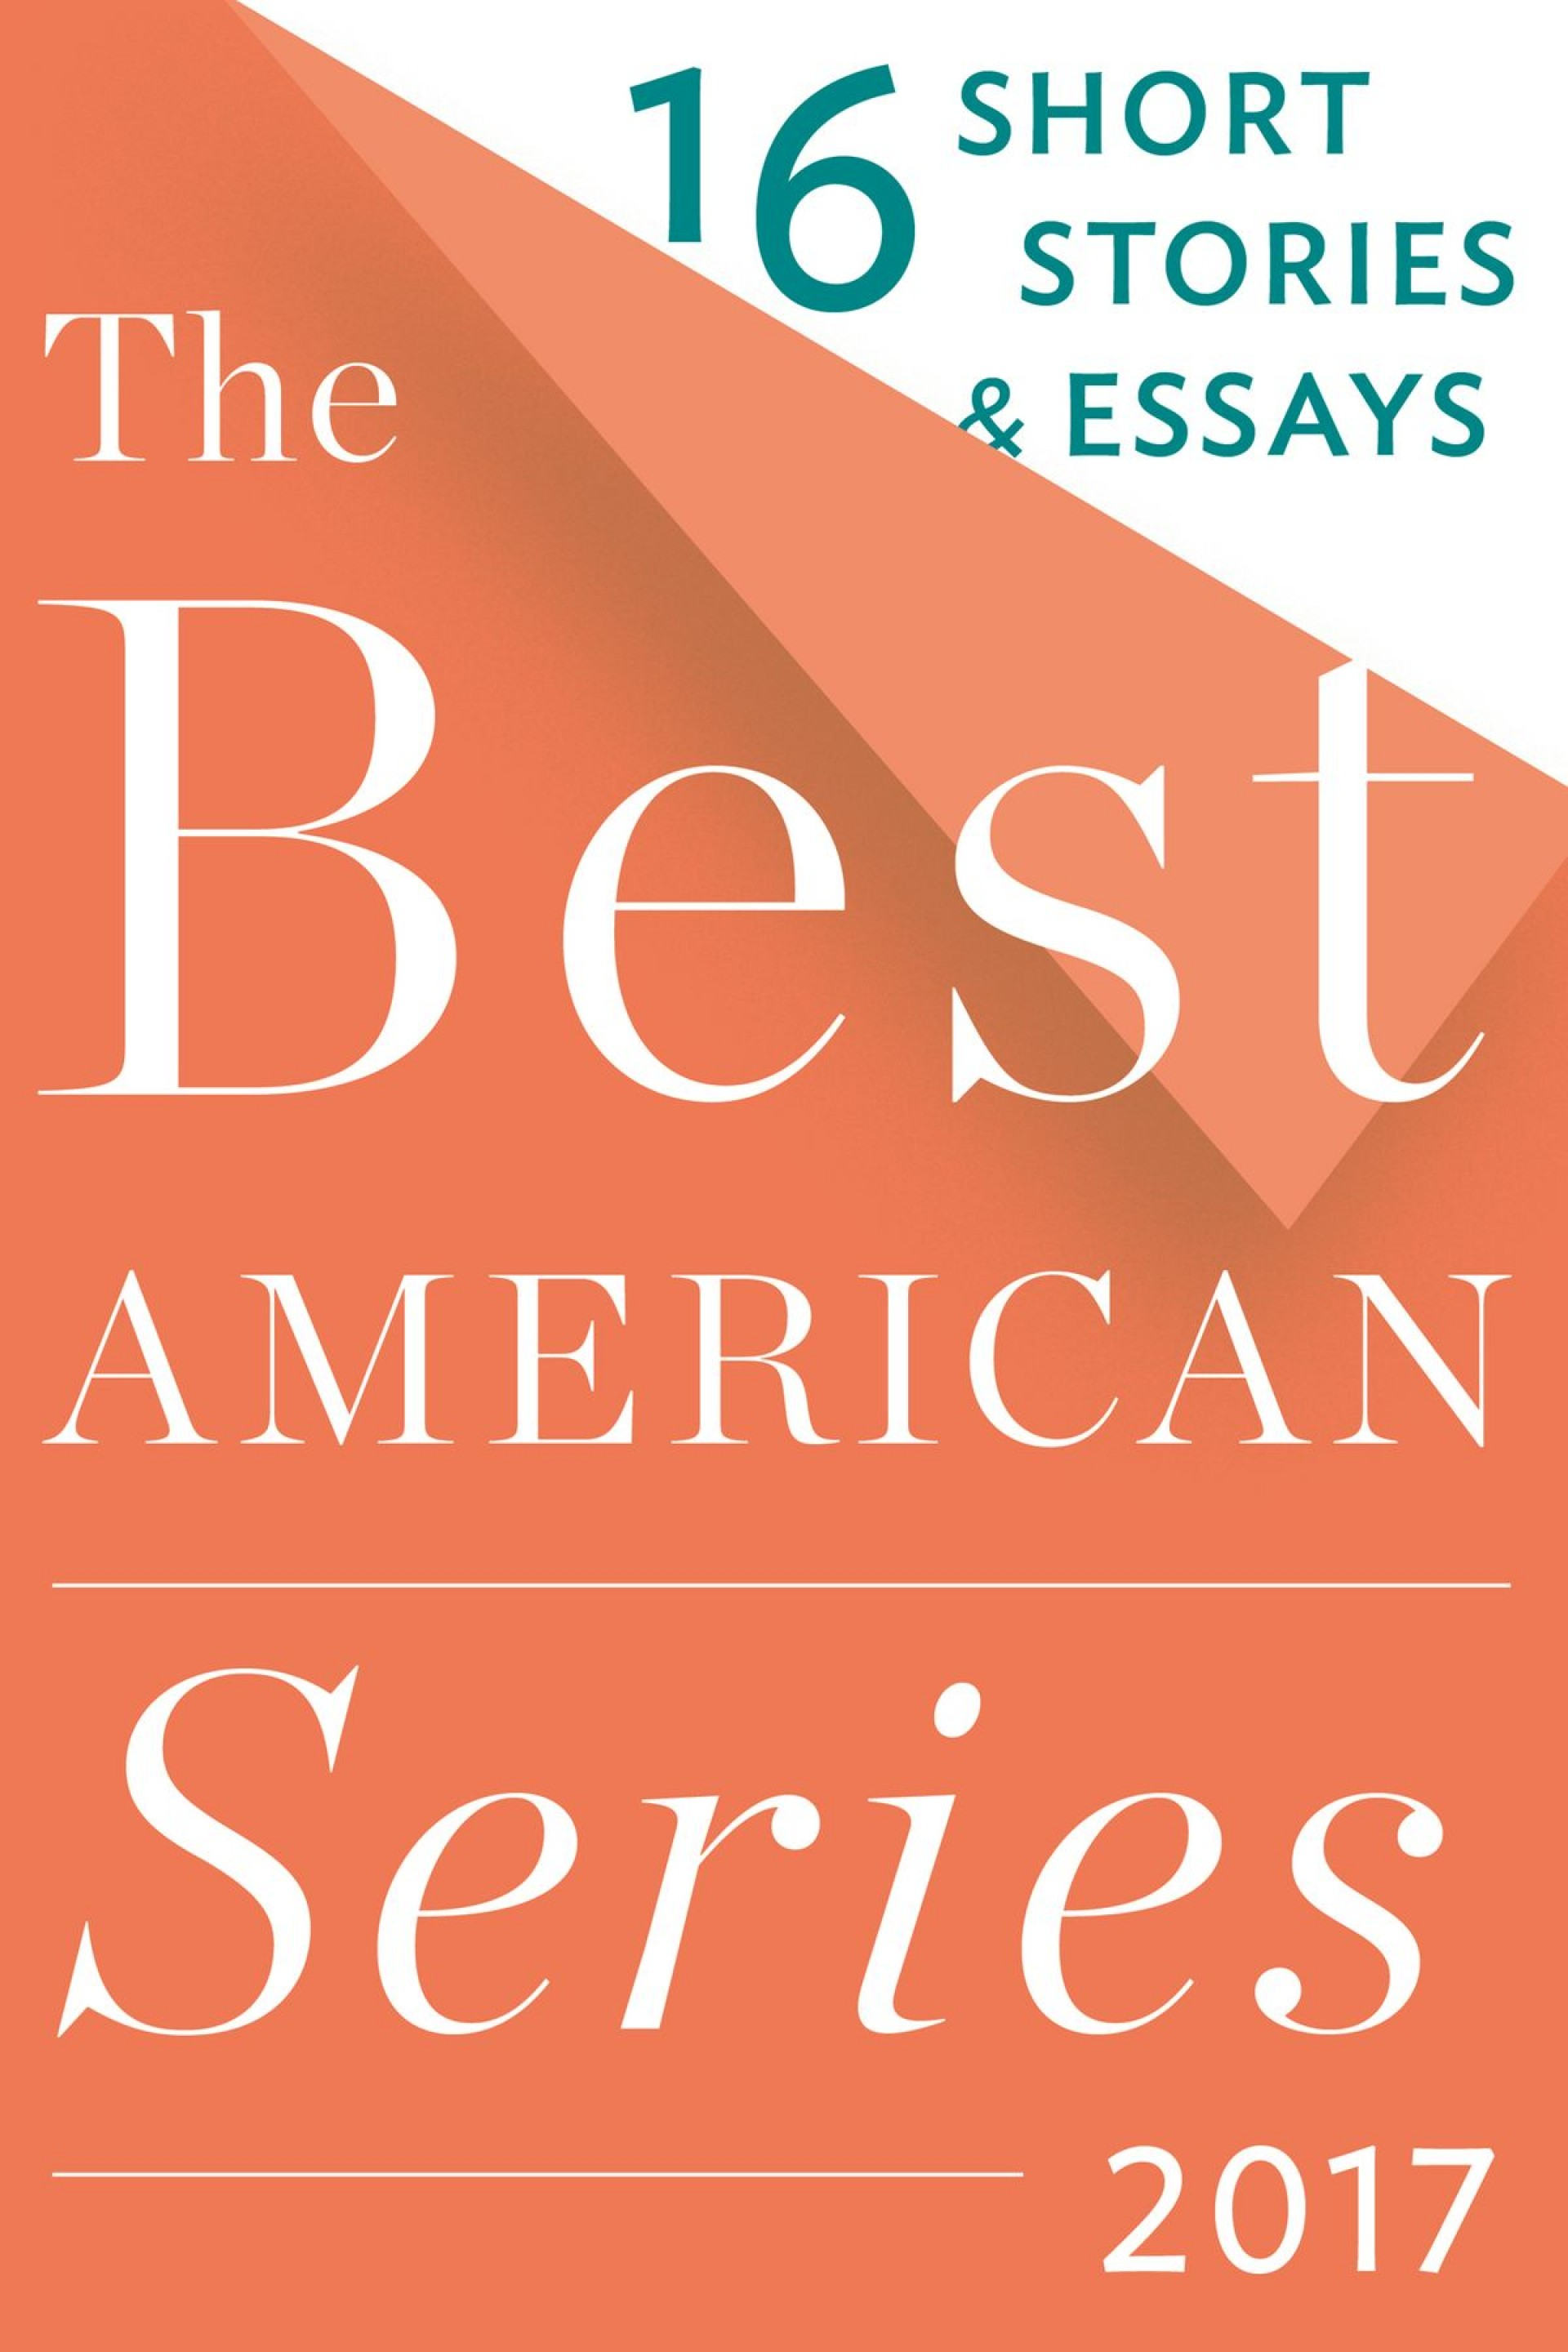 008 The Best American Series Essays Essay Astounding 2017 Submissions Pdf Free Download 1920